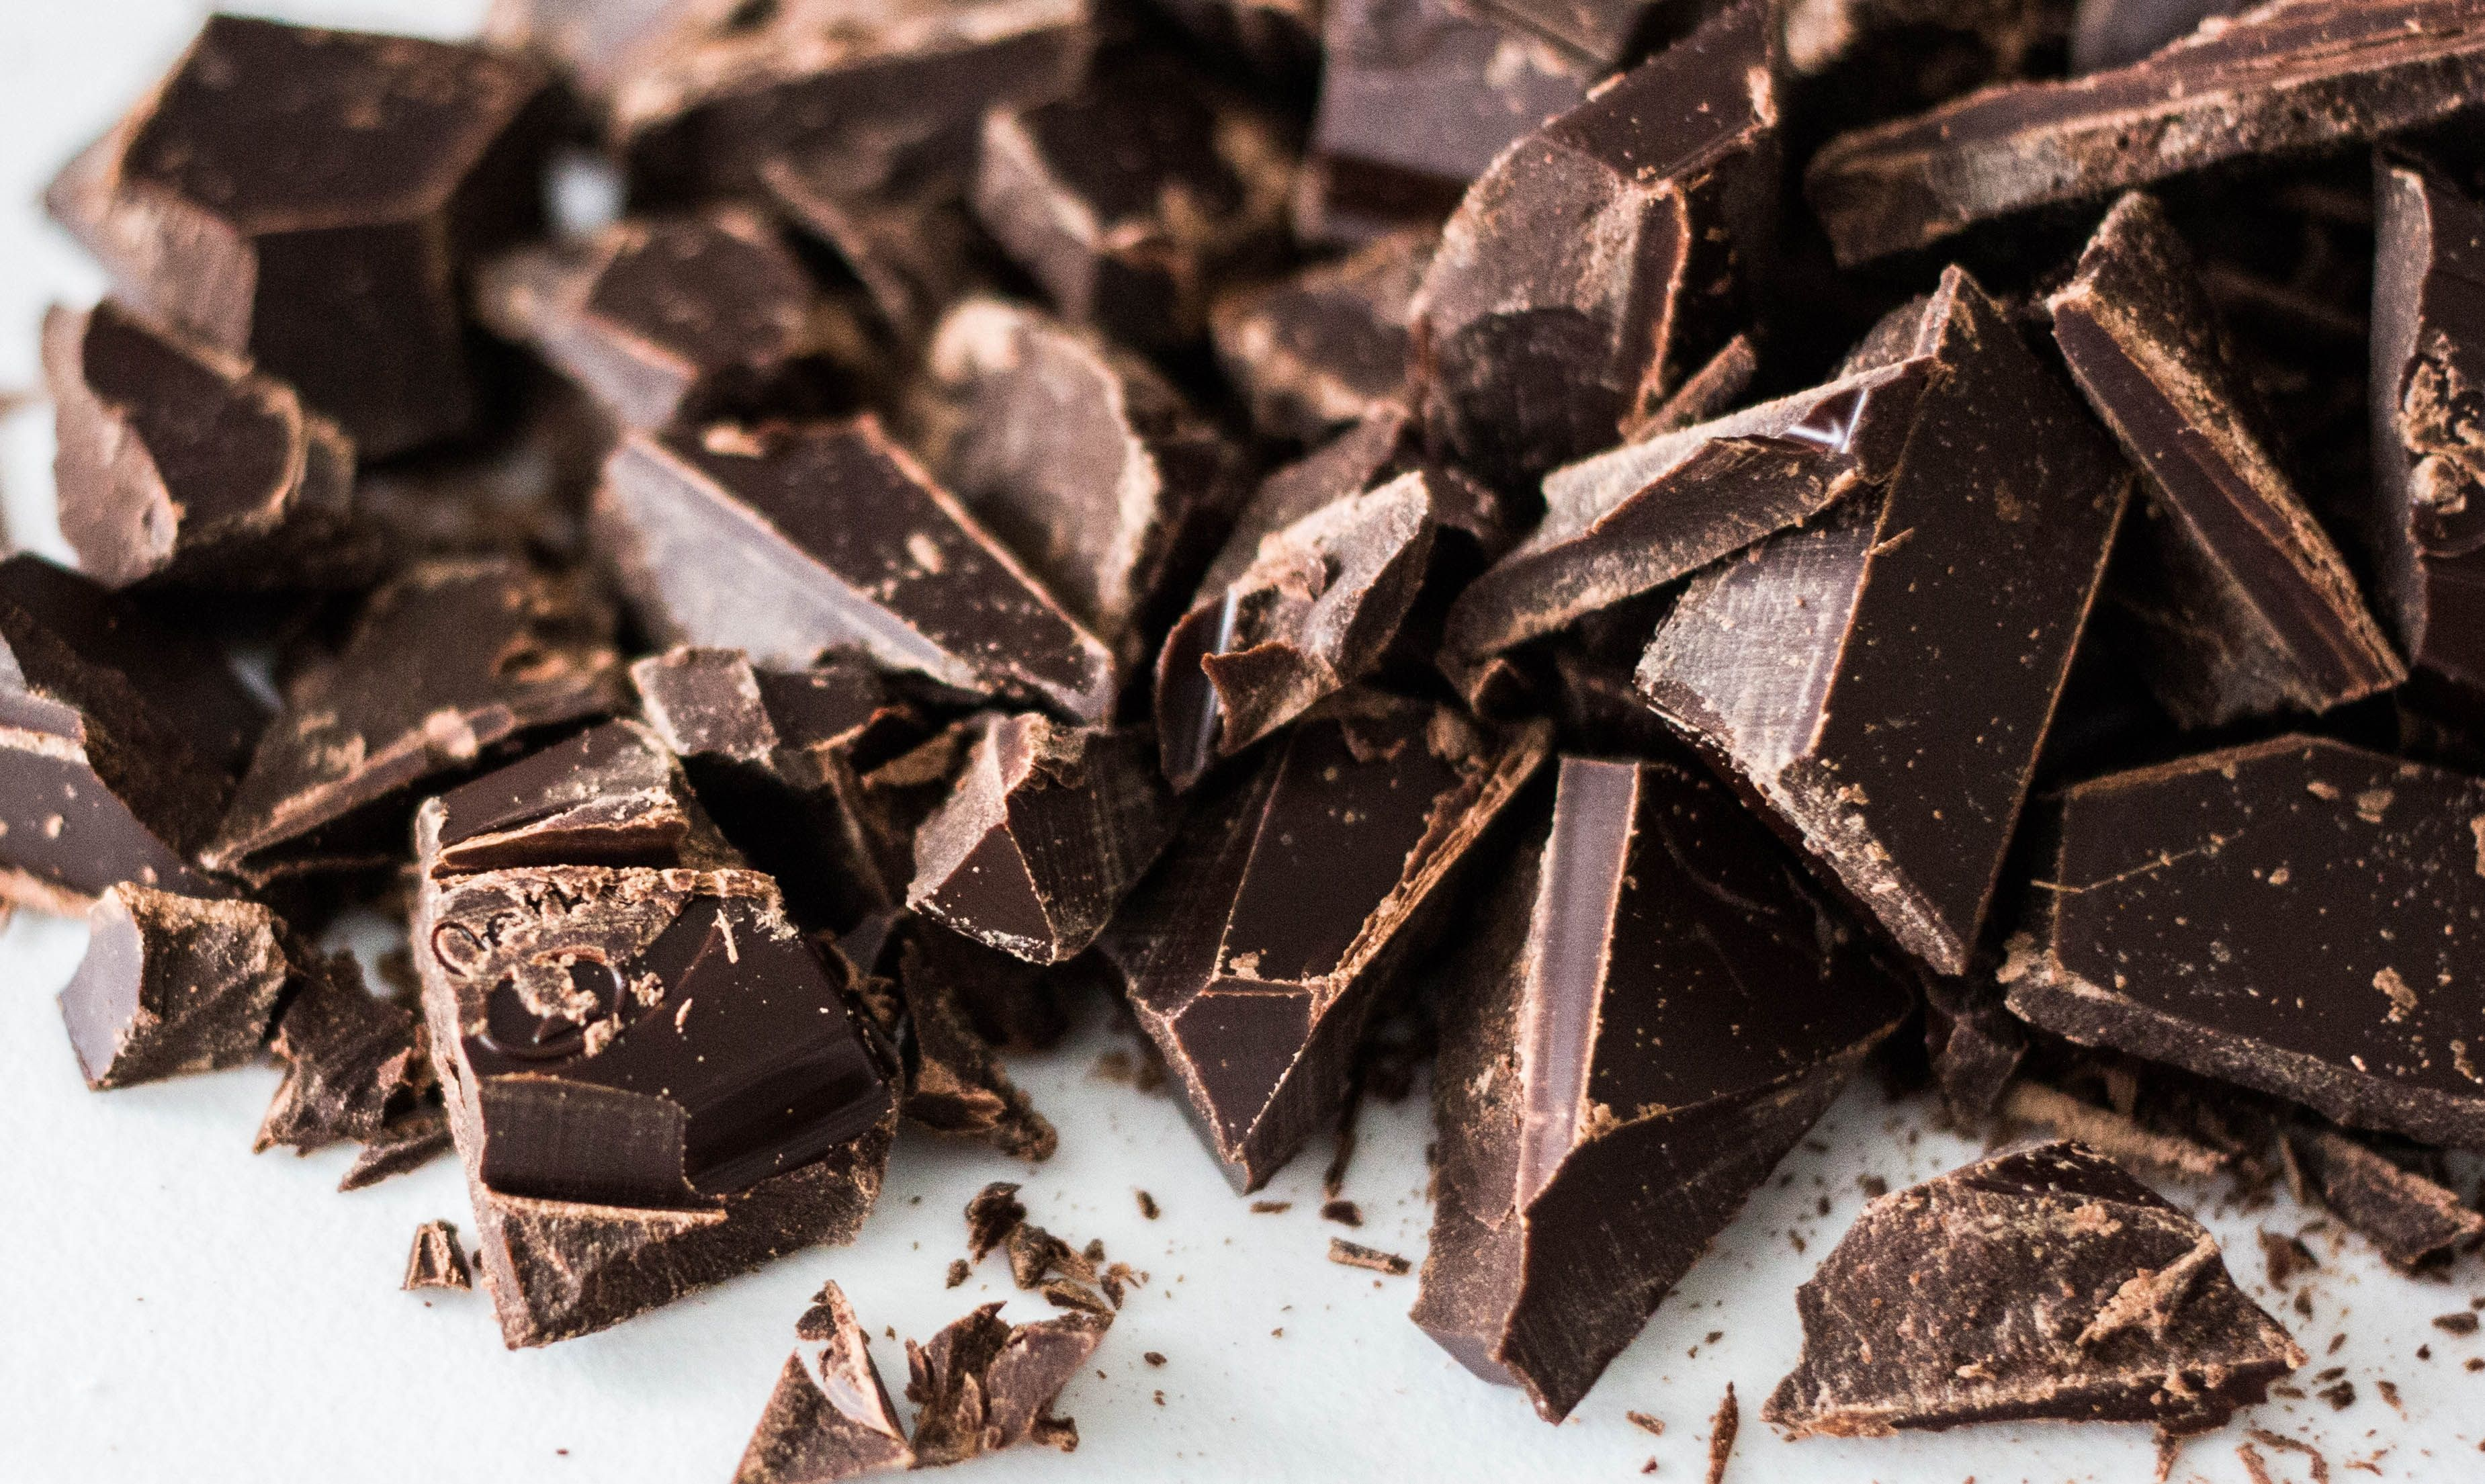 Chunks of dark chocolate